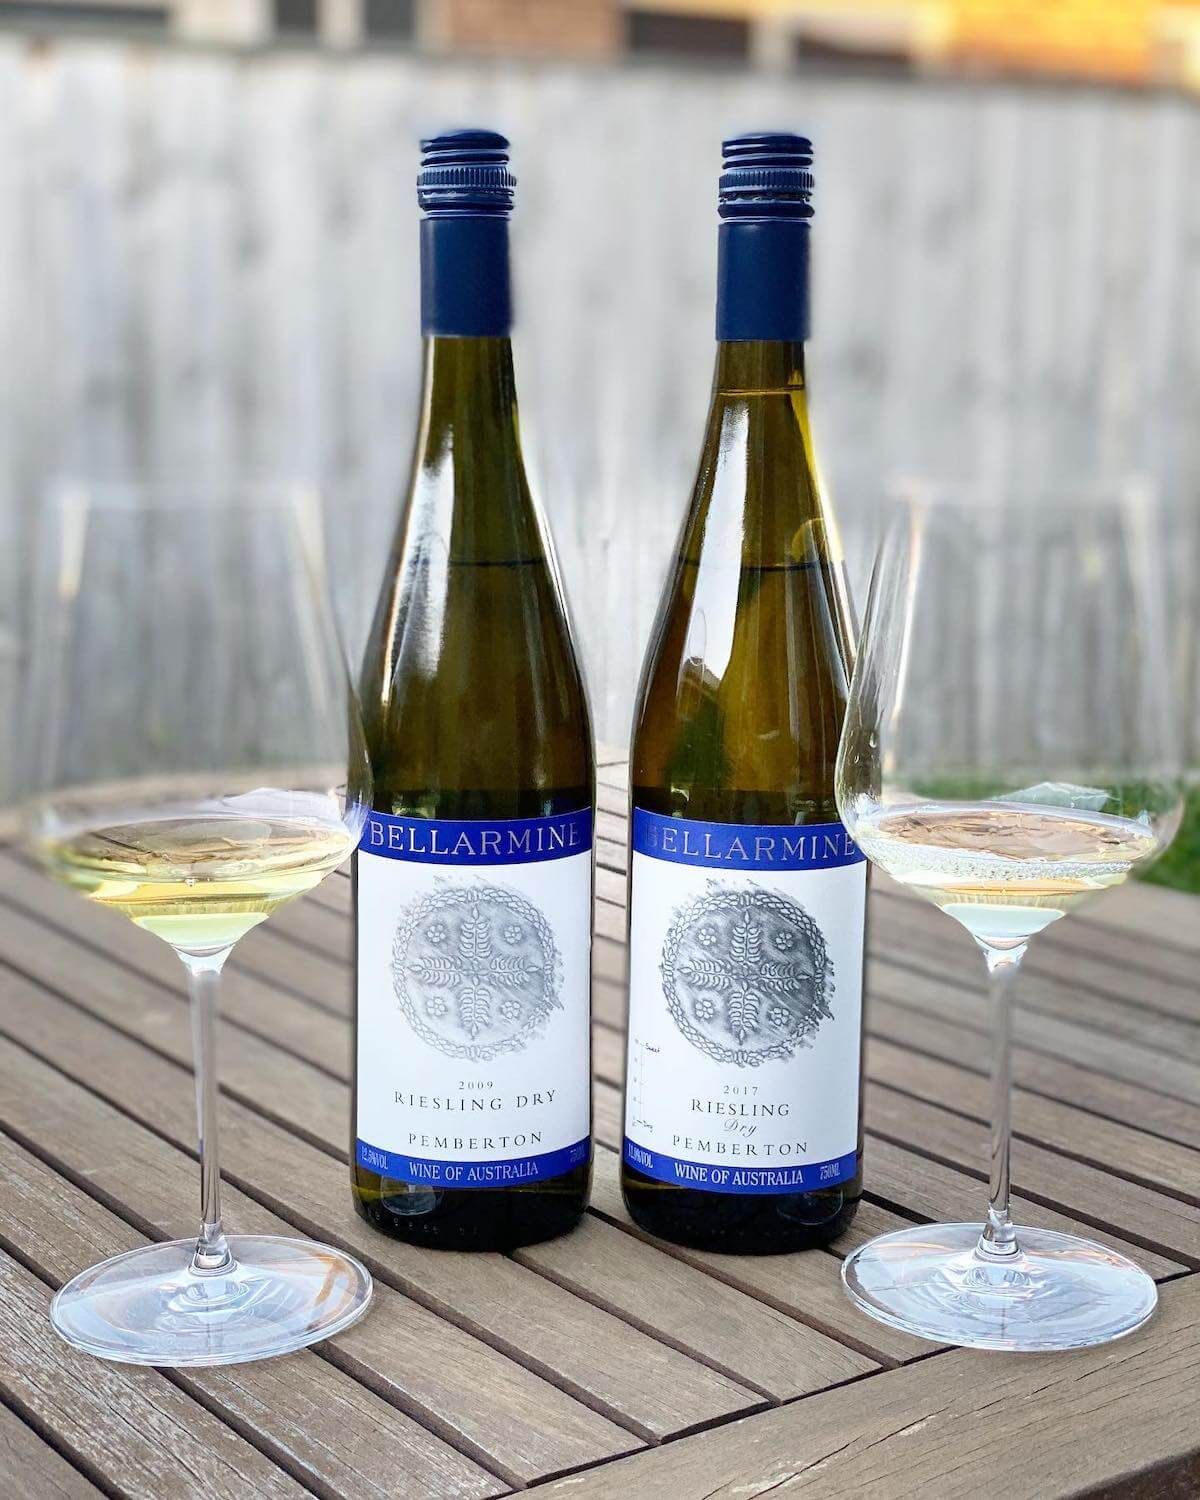 Bellarmine Dry Riesling 2009 and 2017